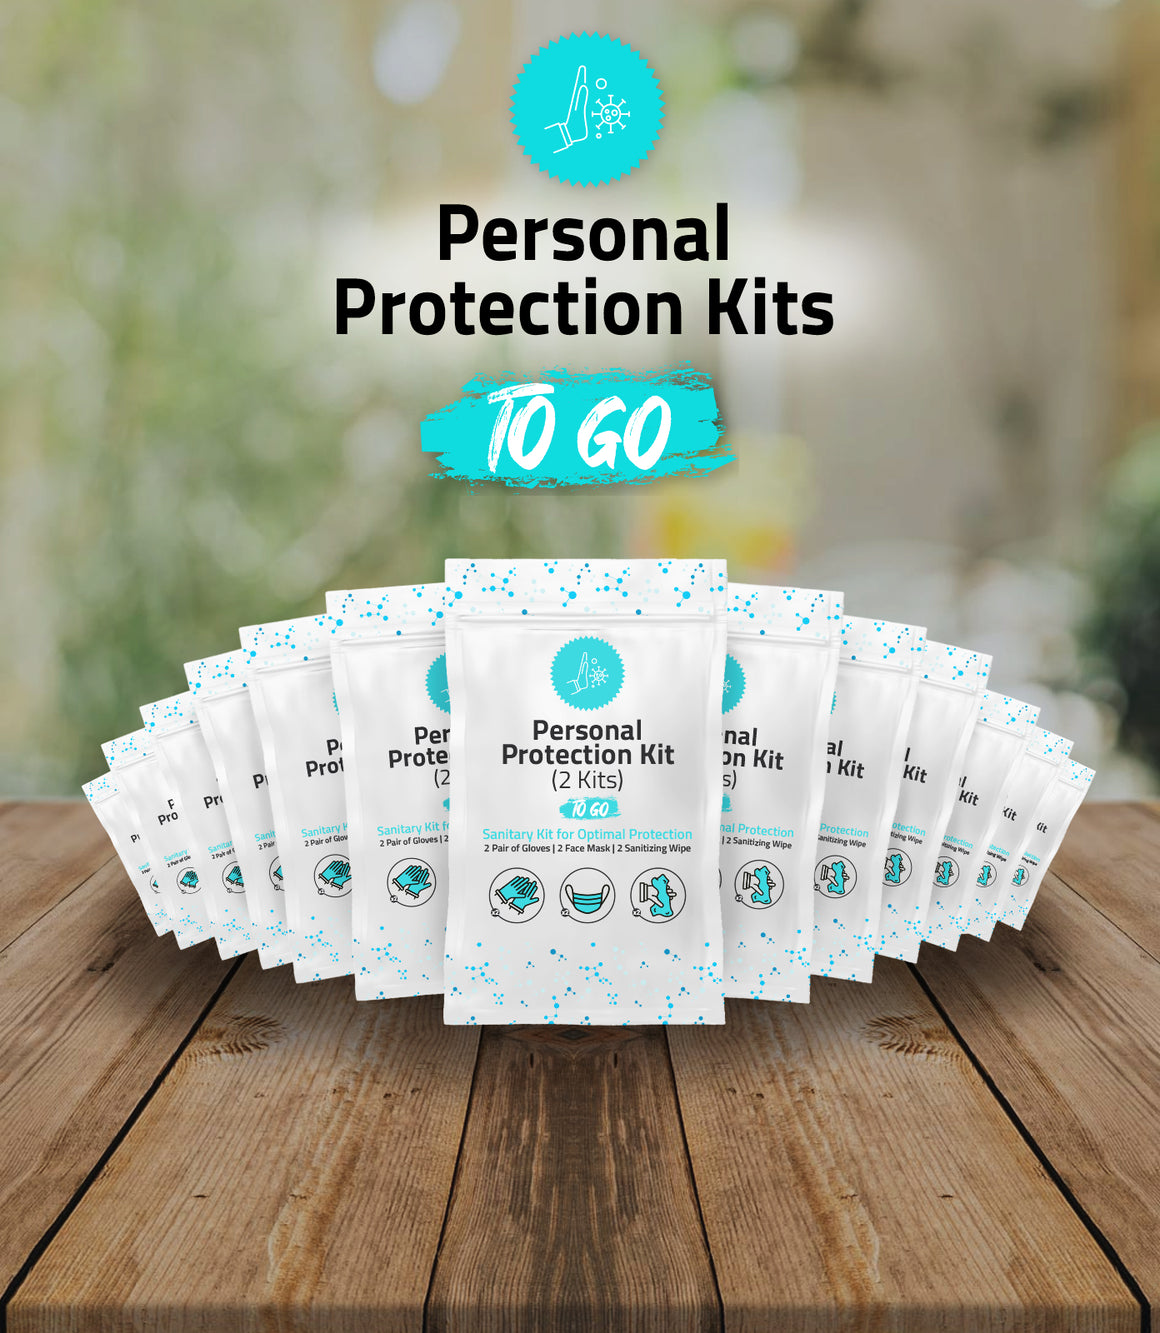 2 Piece - All-In-One Personal Protection Kit TO GO – Sanitary Kit for Optimal Protection.